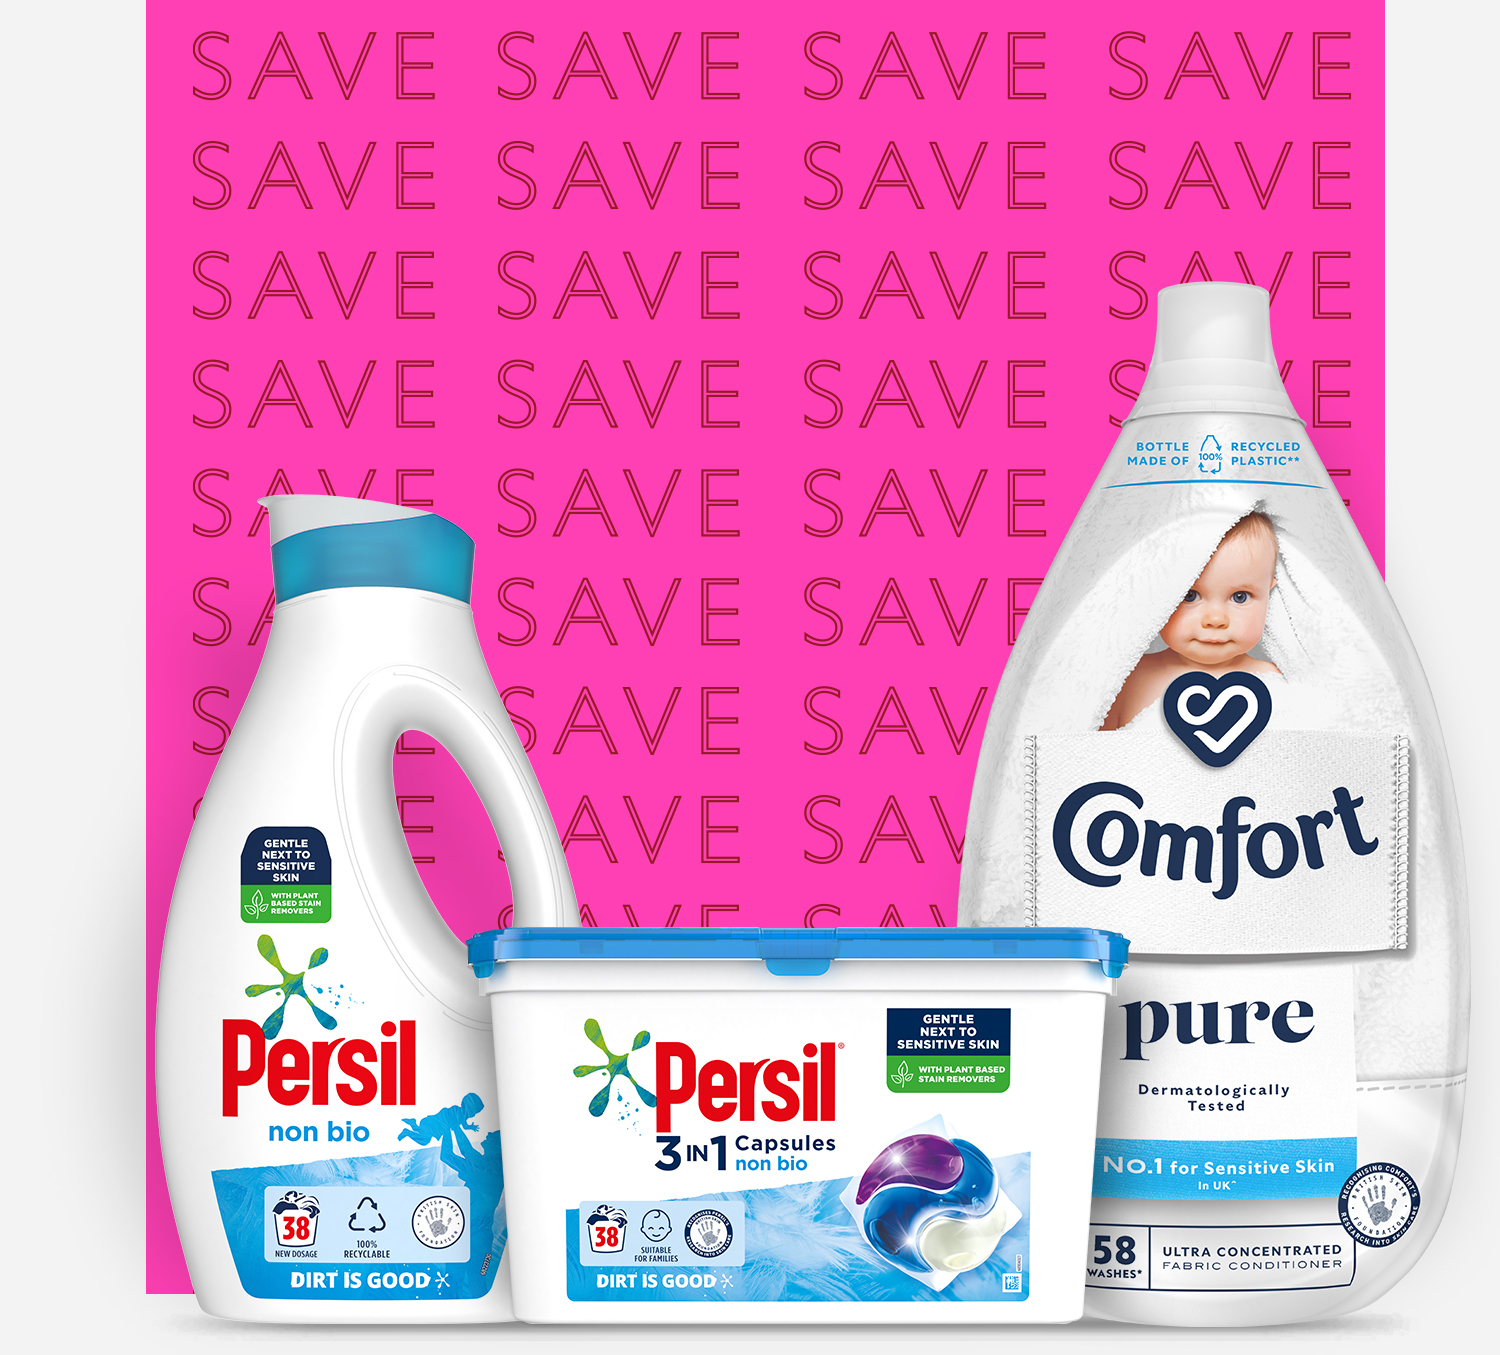 Persil & Comfort laundry detergents